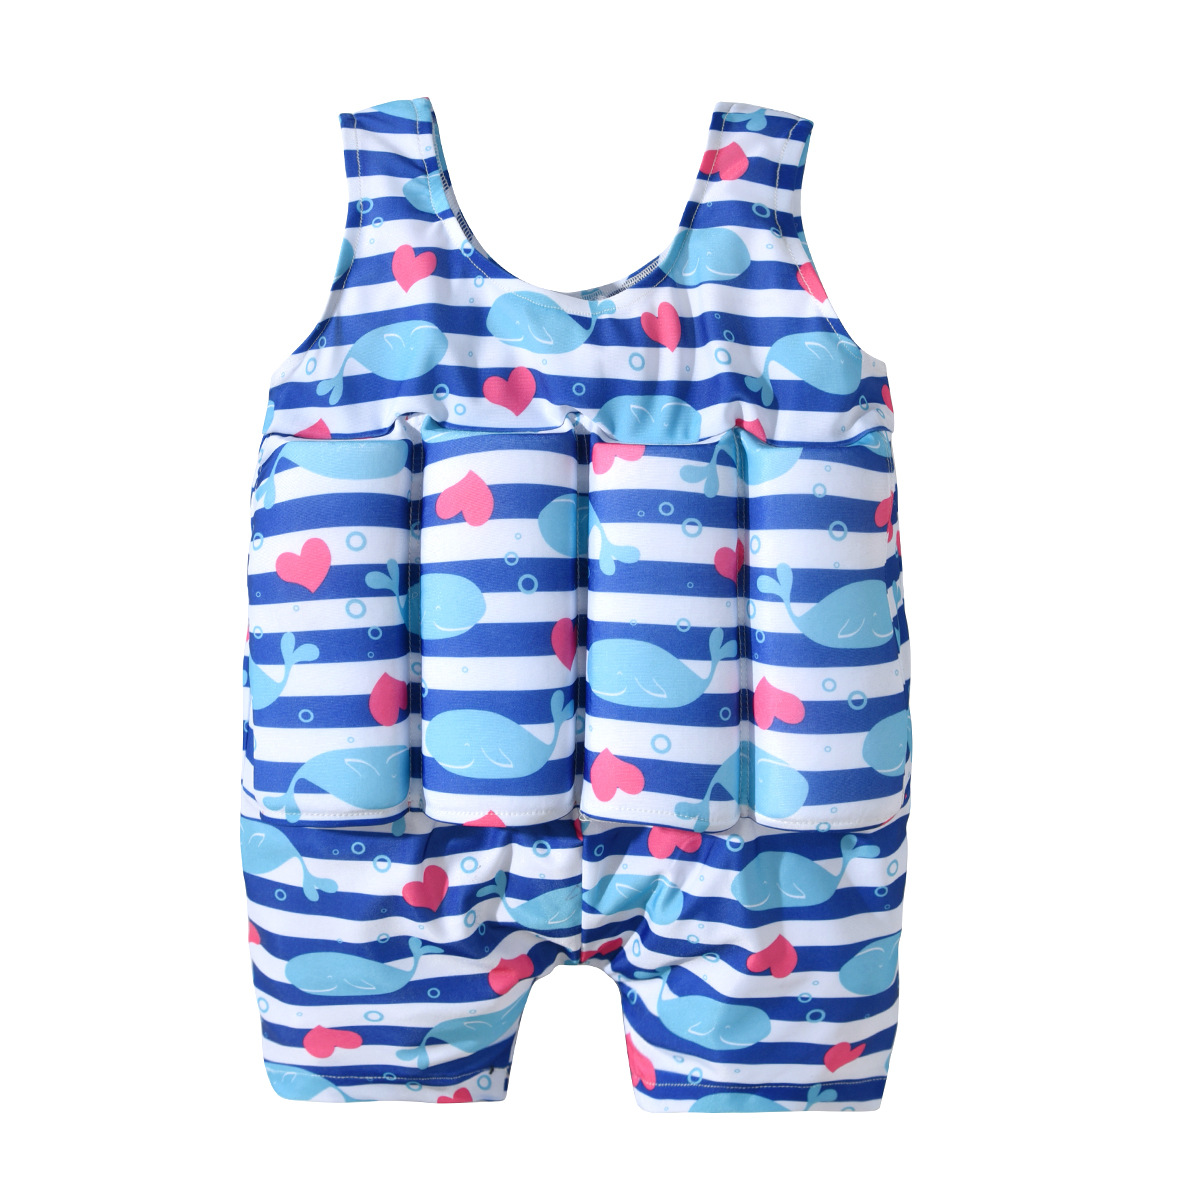 19 Years New Style KID'S Swimwear Europe And America Girls Small Whale Heart Tour Bathing Suit Swimming Training One-piece Swimw